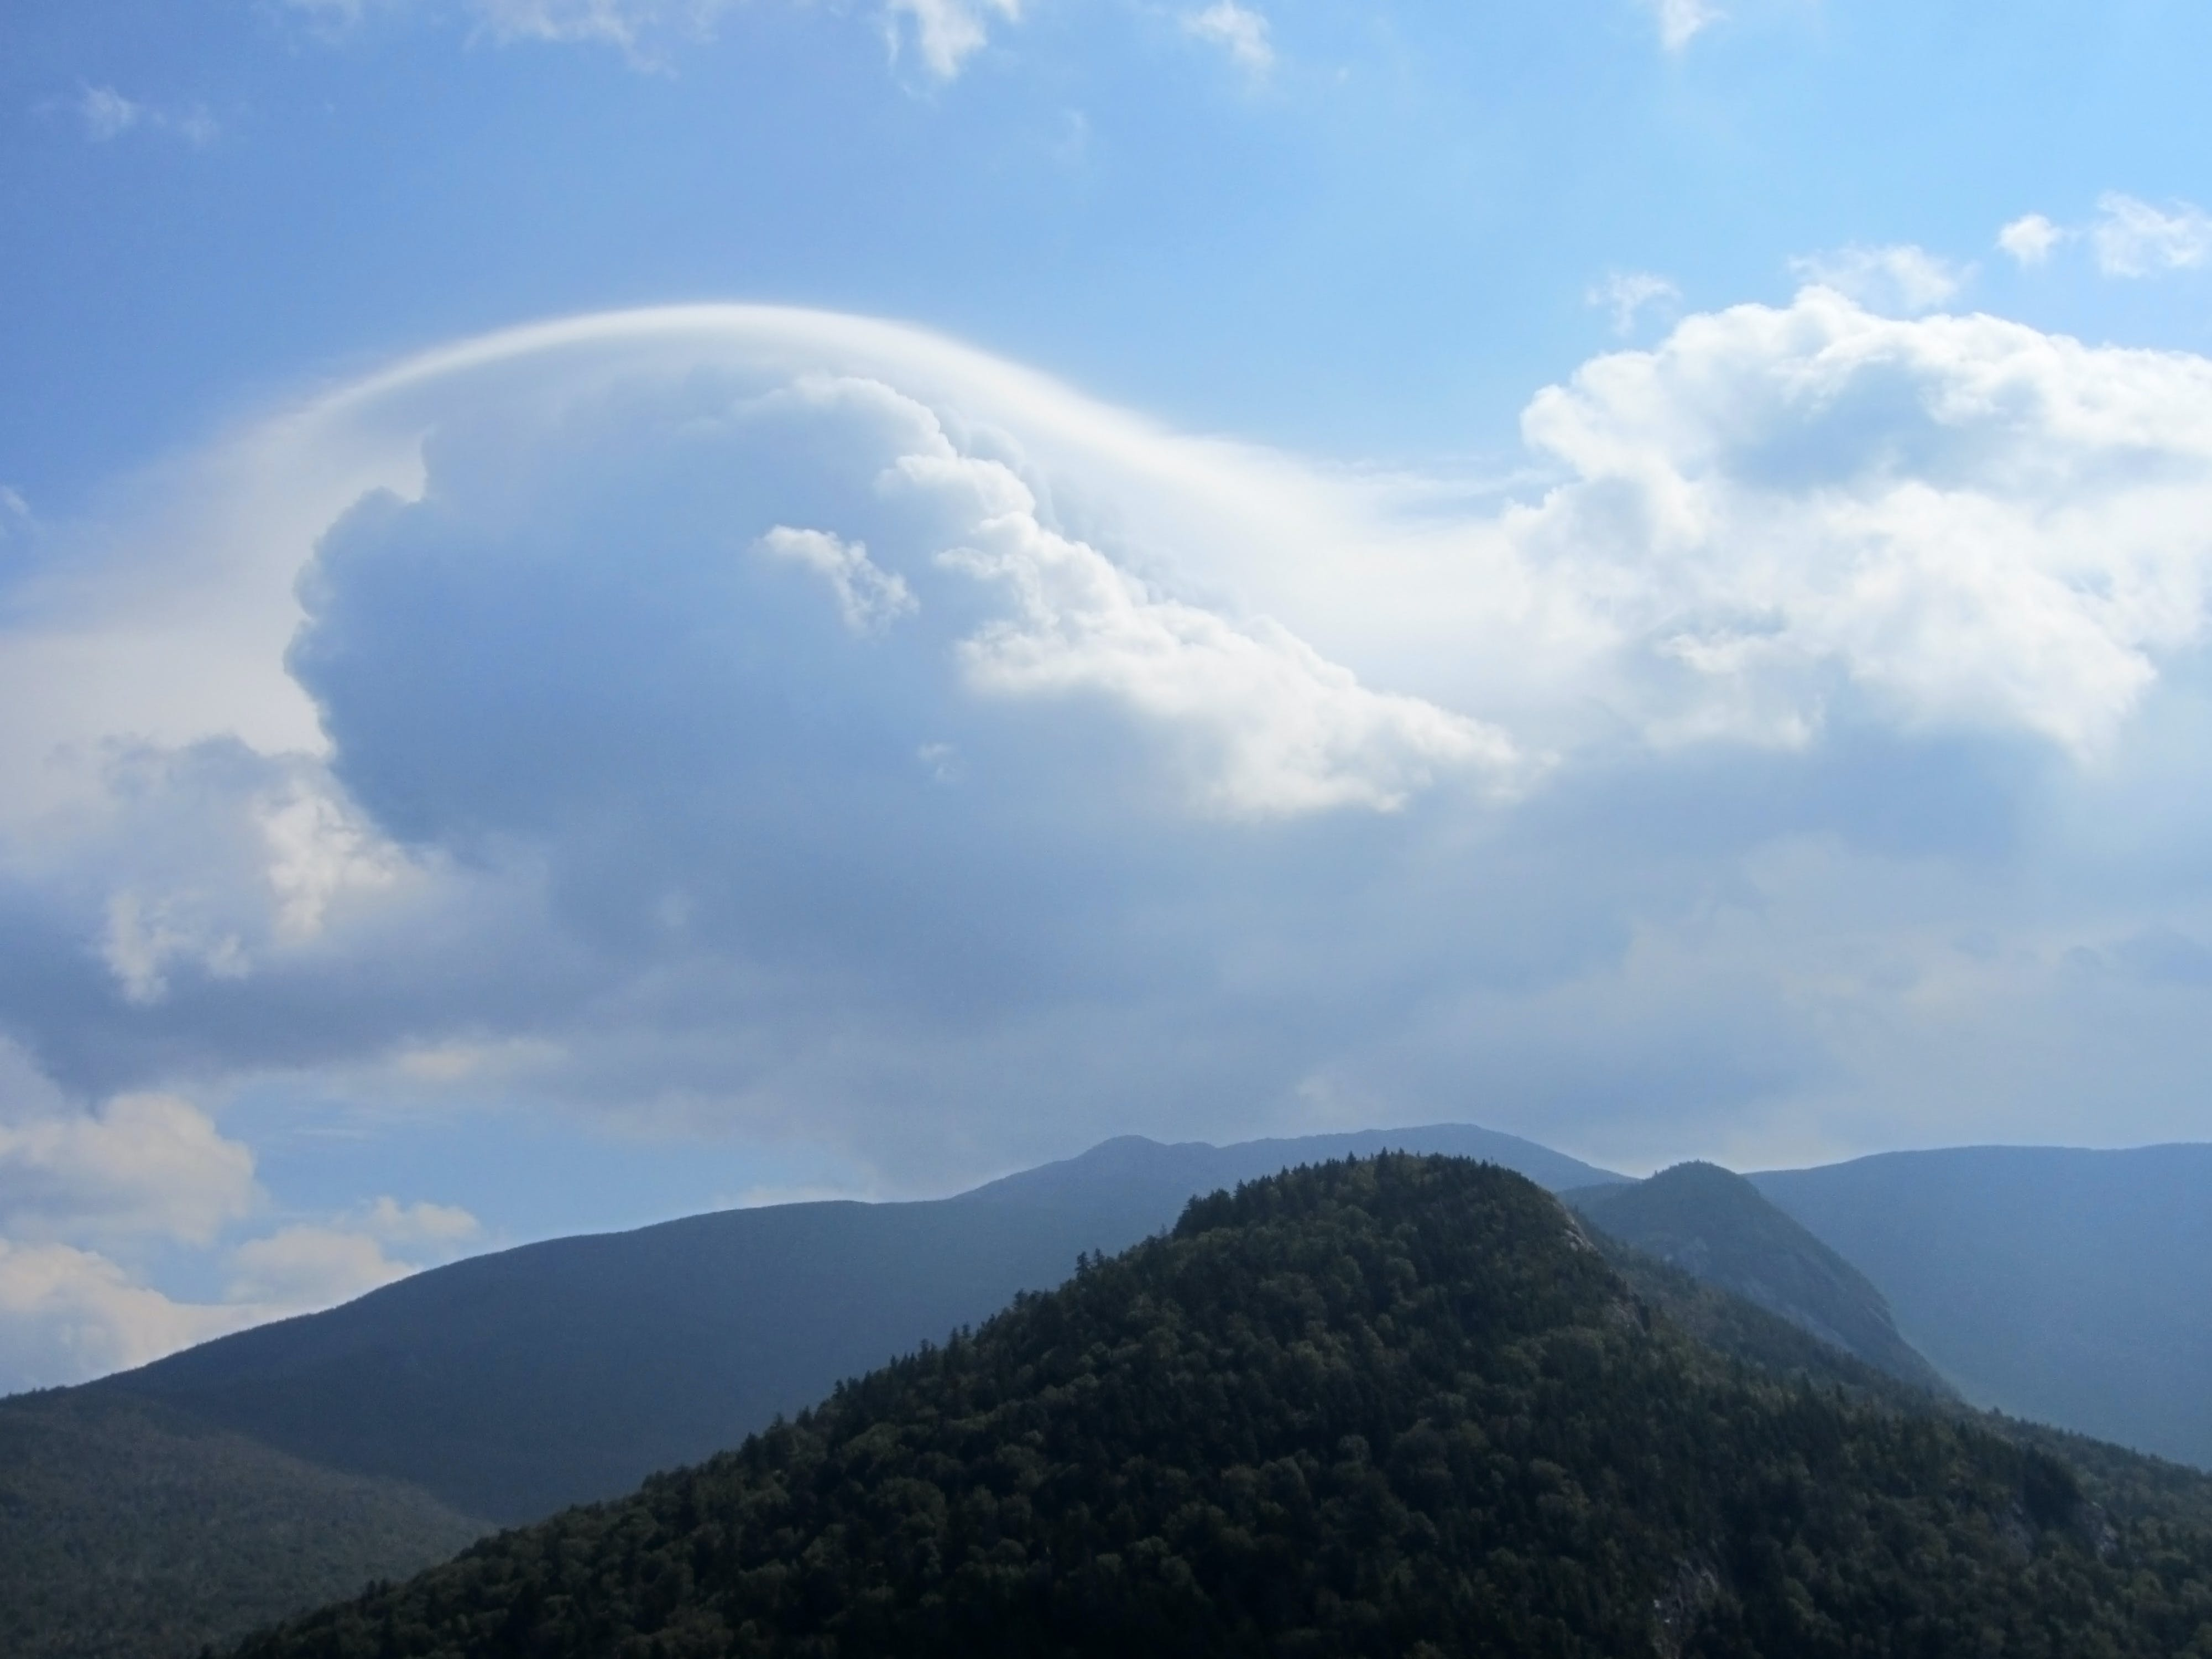 Free stock photo of mountains, sky, clouds